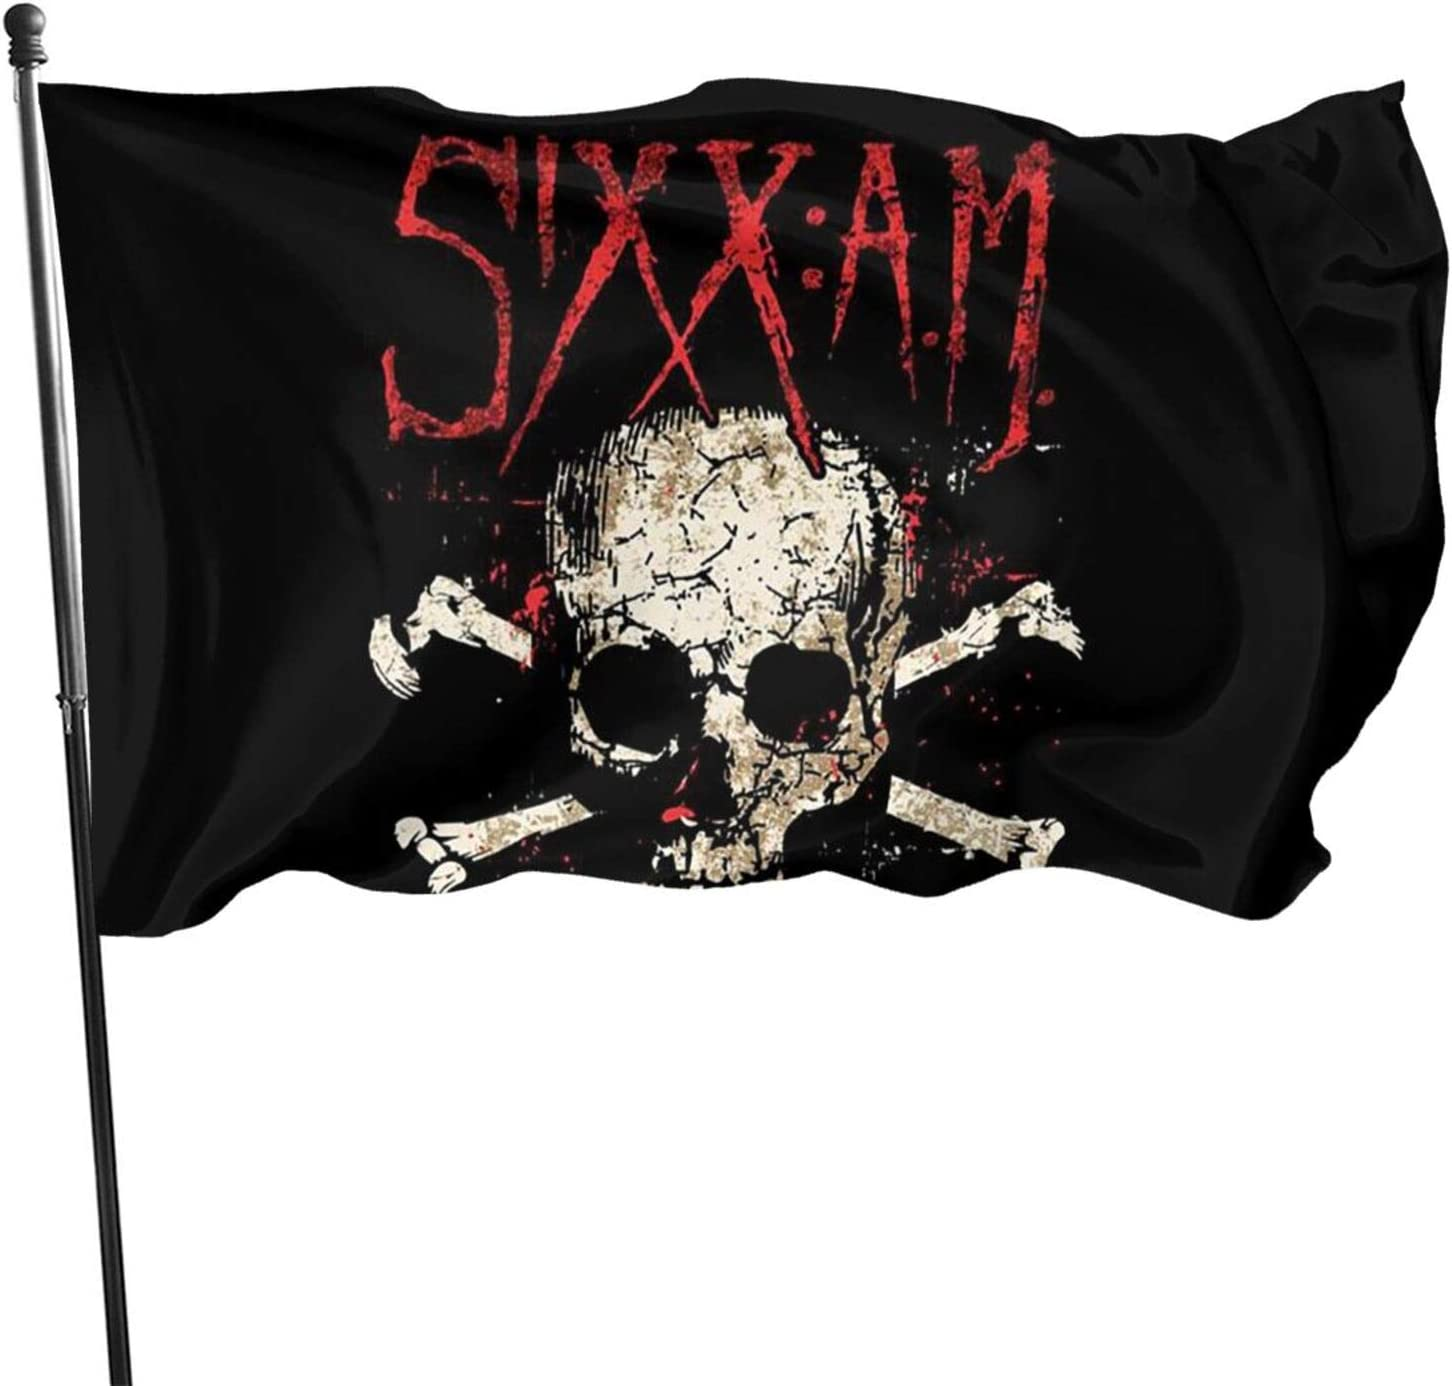 Sixx Am Band Garden Flag Personalized Decoration Banner Indoor Outdoor Courtyard Sign Farm Party Activities 3 X 5 Ft